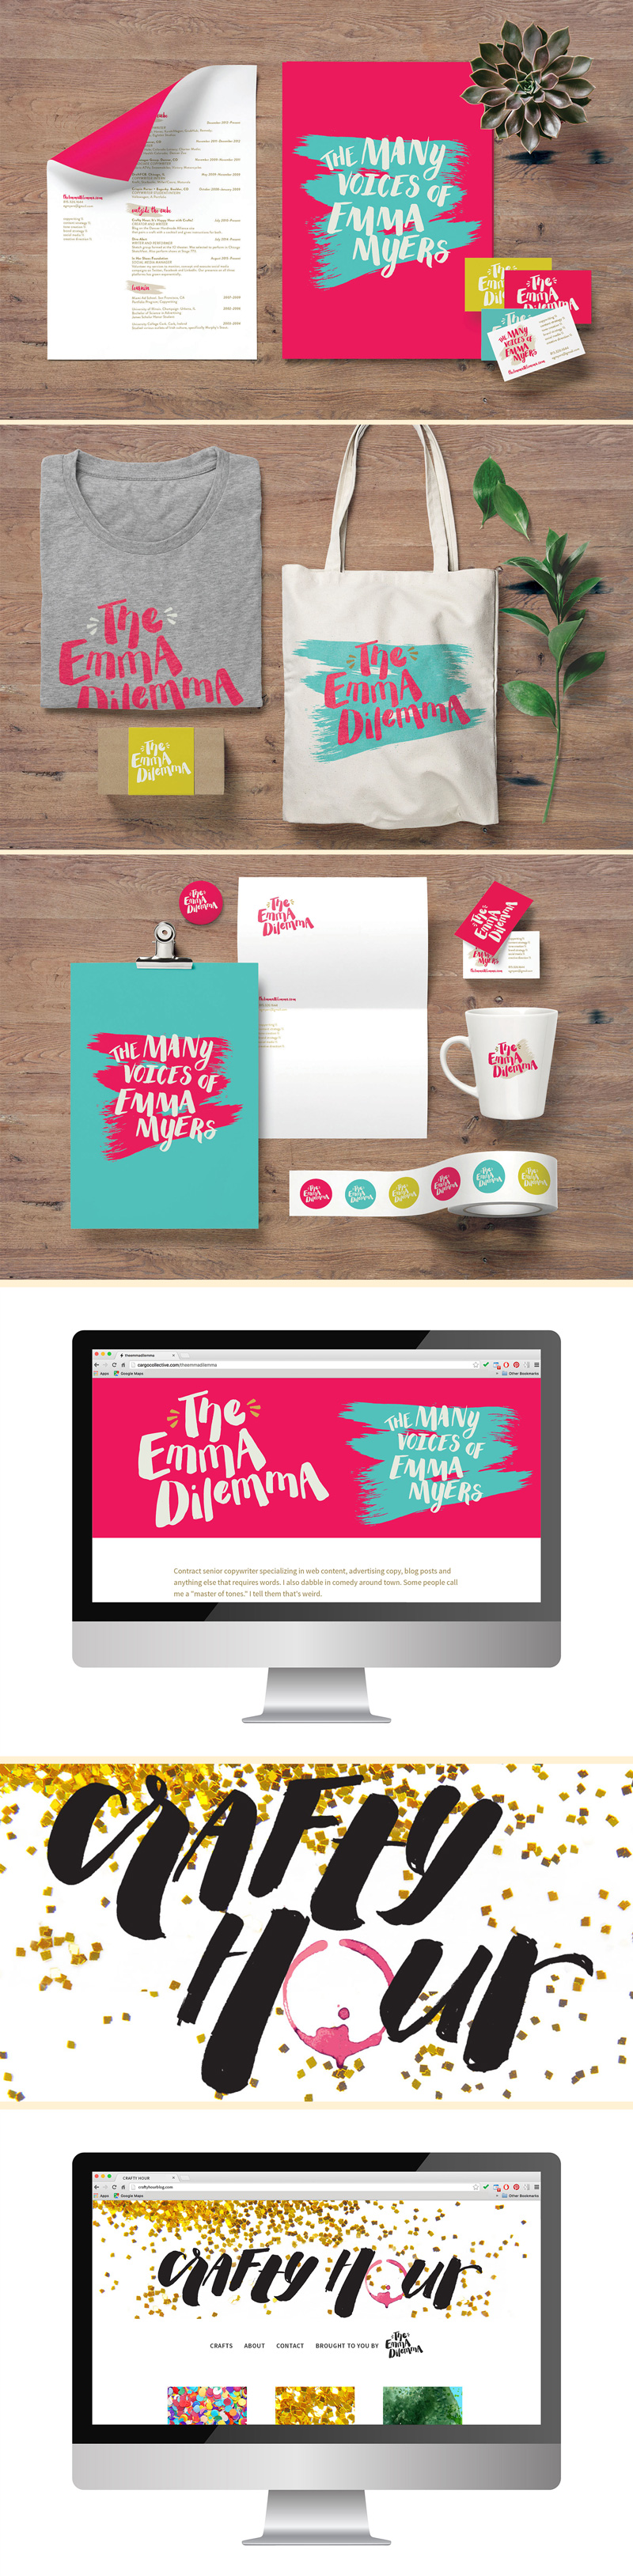 Emma Myers branding and custom typography by Riddle Design Co. a graphic design studio in Richmond, Virginia